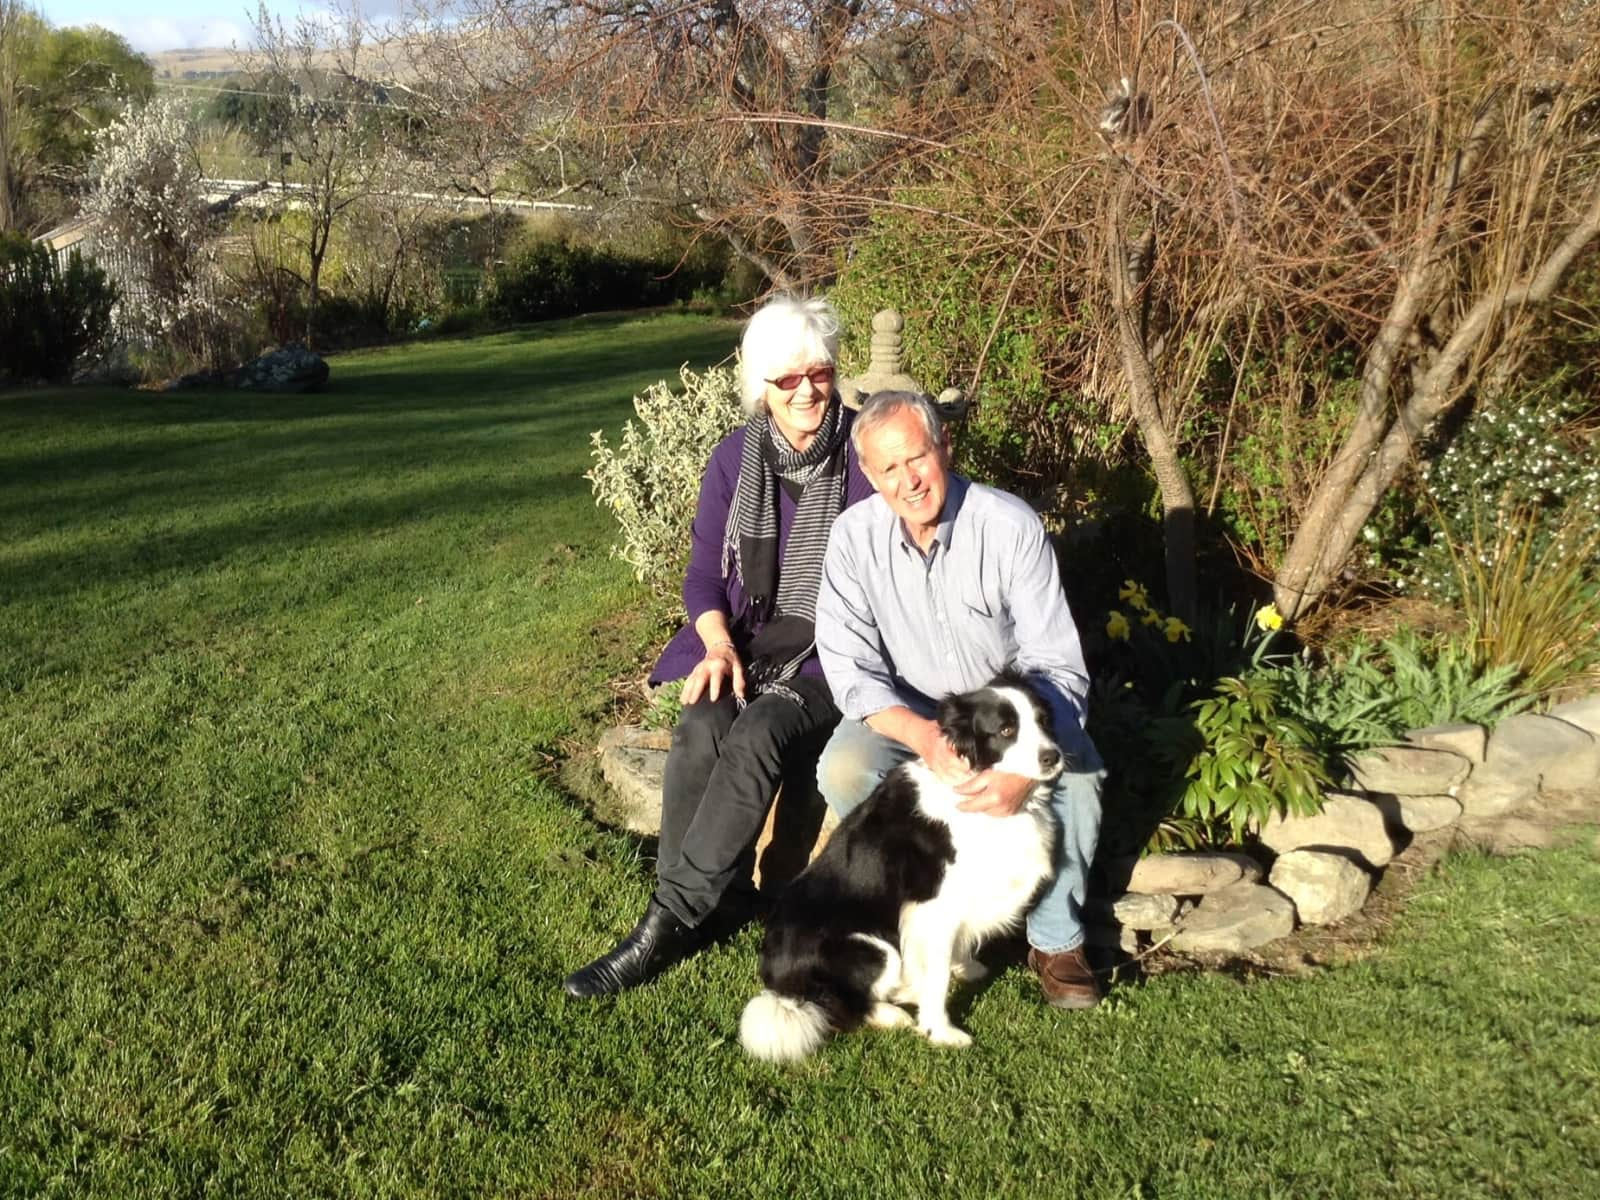 Vivien & Gordon from Dunedin, New Zealand